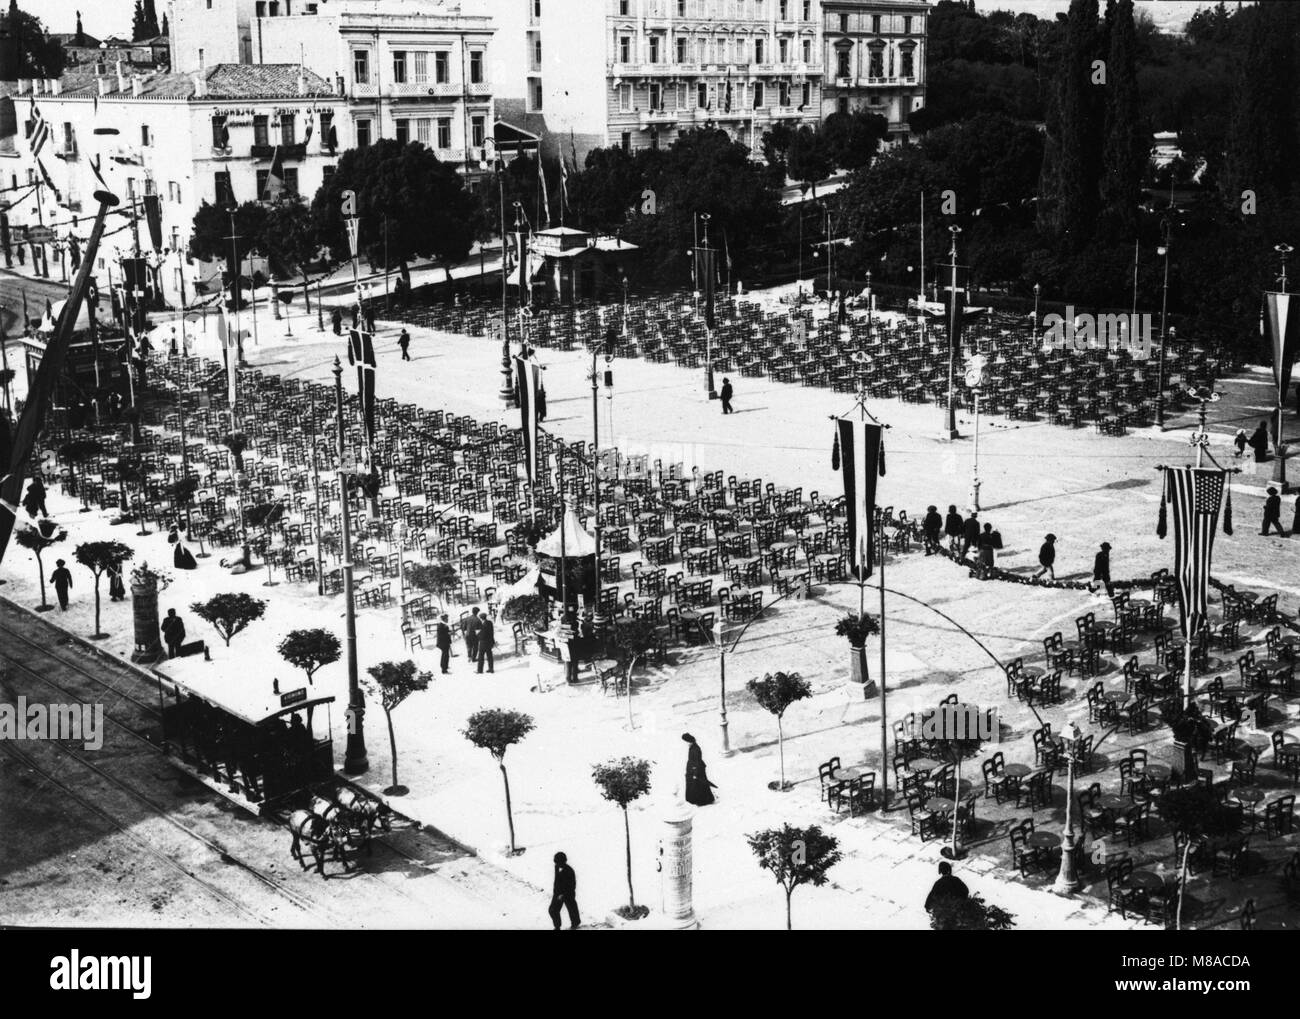 Ceremony during 1896 Olympics, Athens, Greece Stock Photo